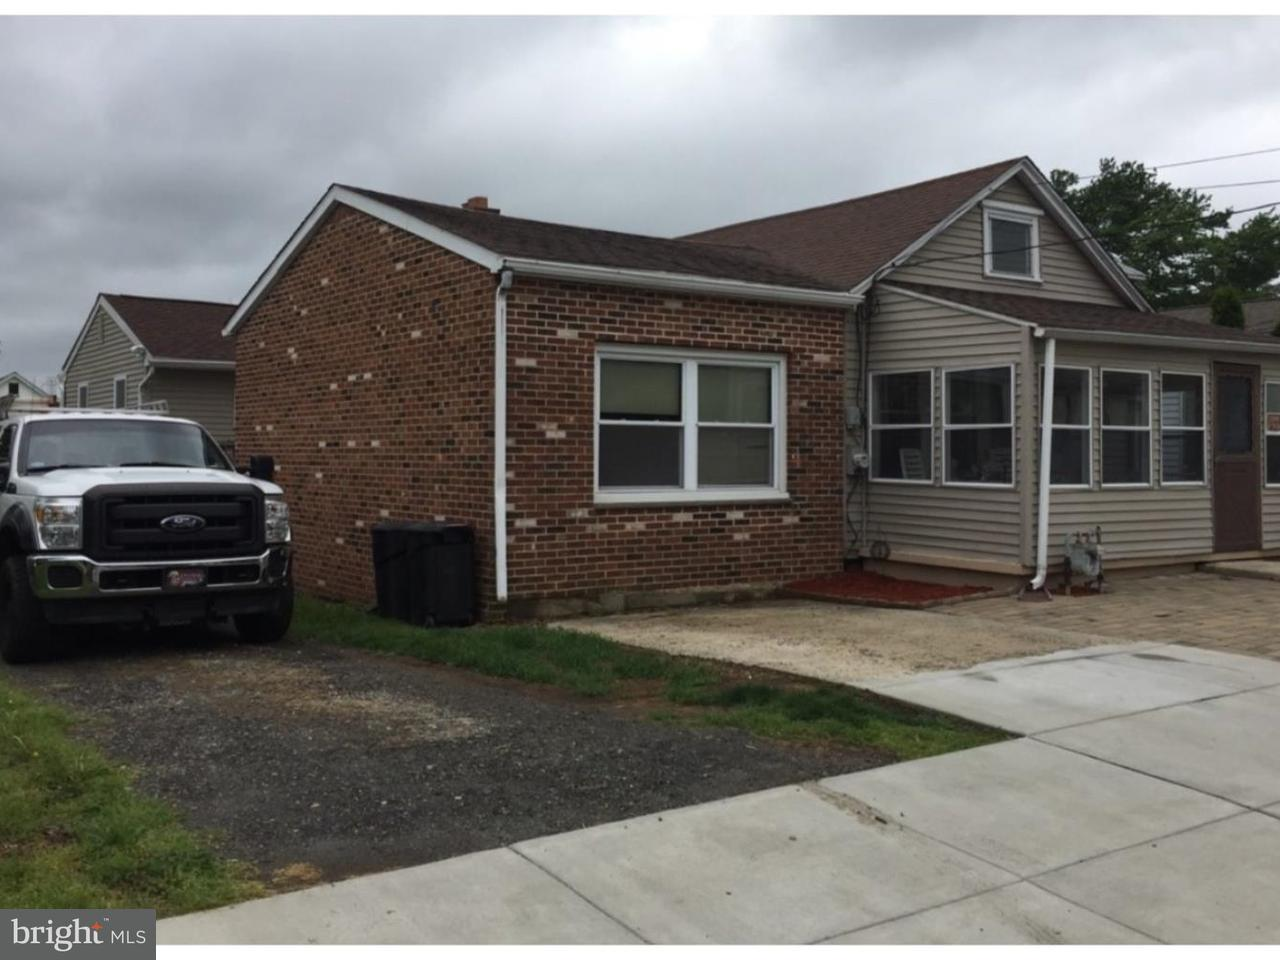 Single Family Home for Sale at 1008 LANGLEY Street Trainer, Pennsylvania 19061 United States